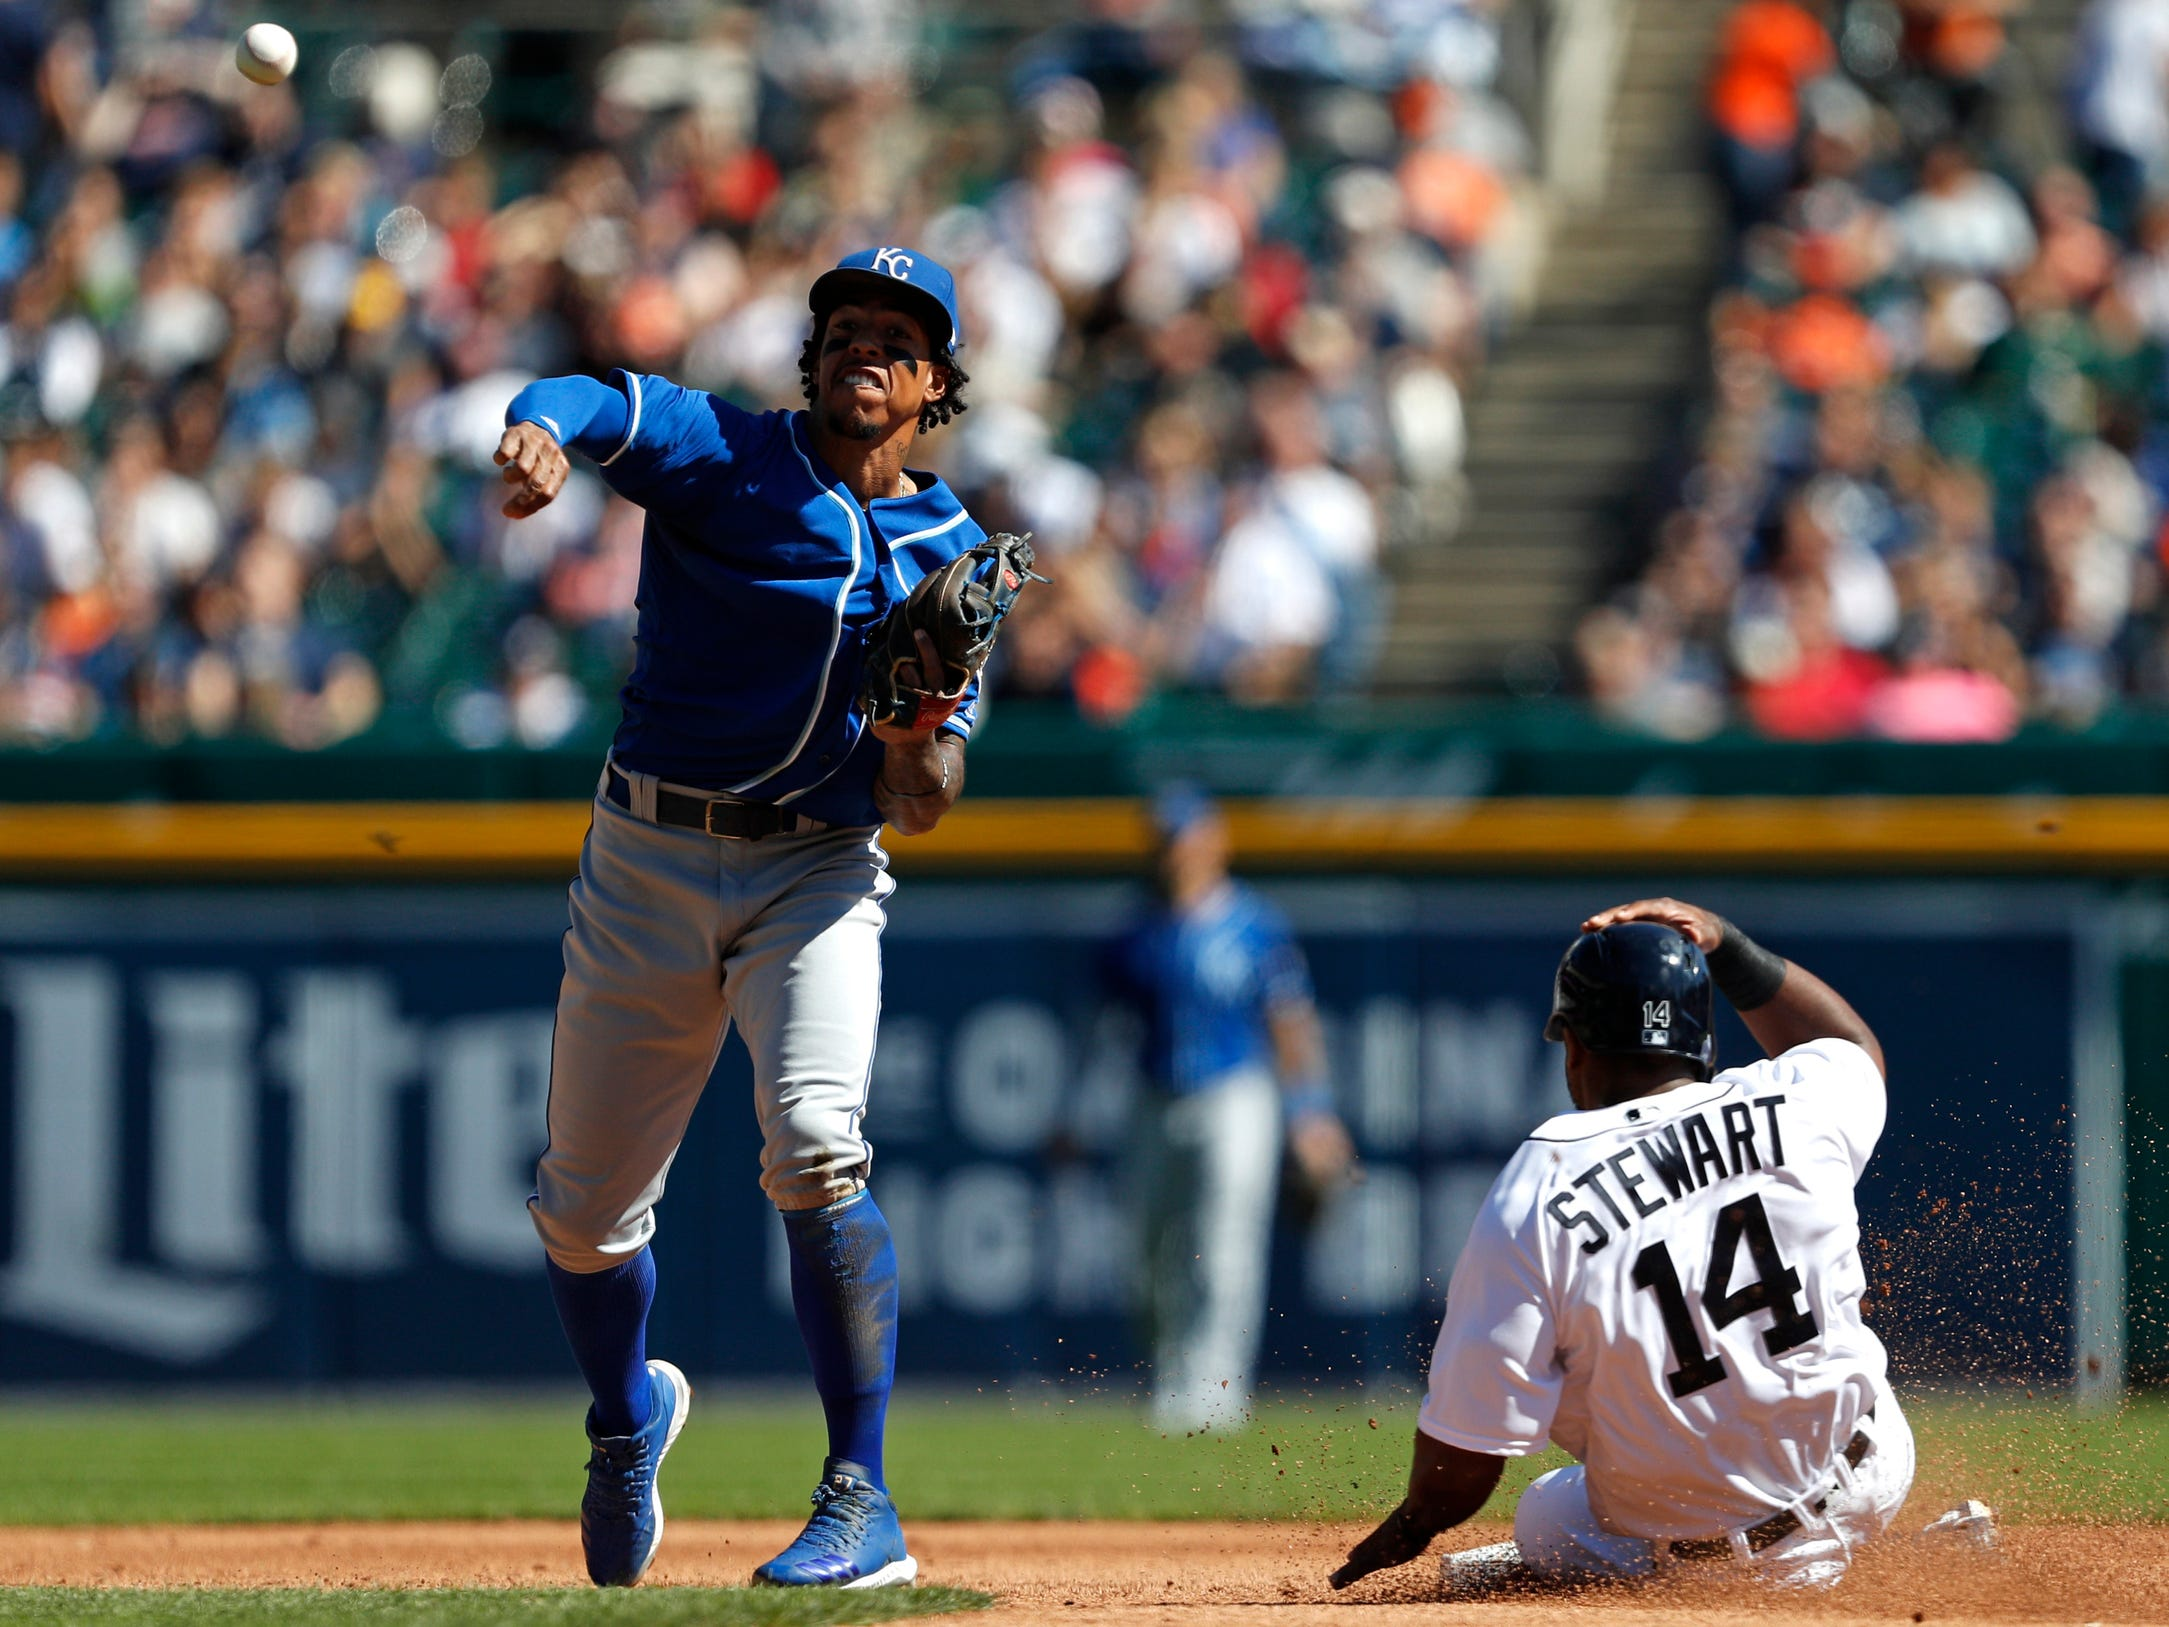 Kansas City Royals second baseman Adalberto Mondesi makes a throw to first base for an out during the fourth inning as Tigers designed hitter Christin Stewart slides into second base on Sunday, Sept. 23, 2018, at Comerica Park.